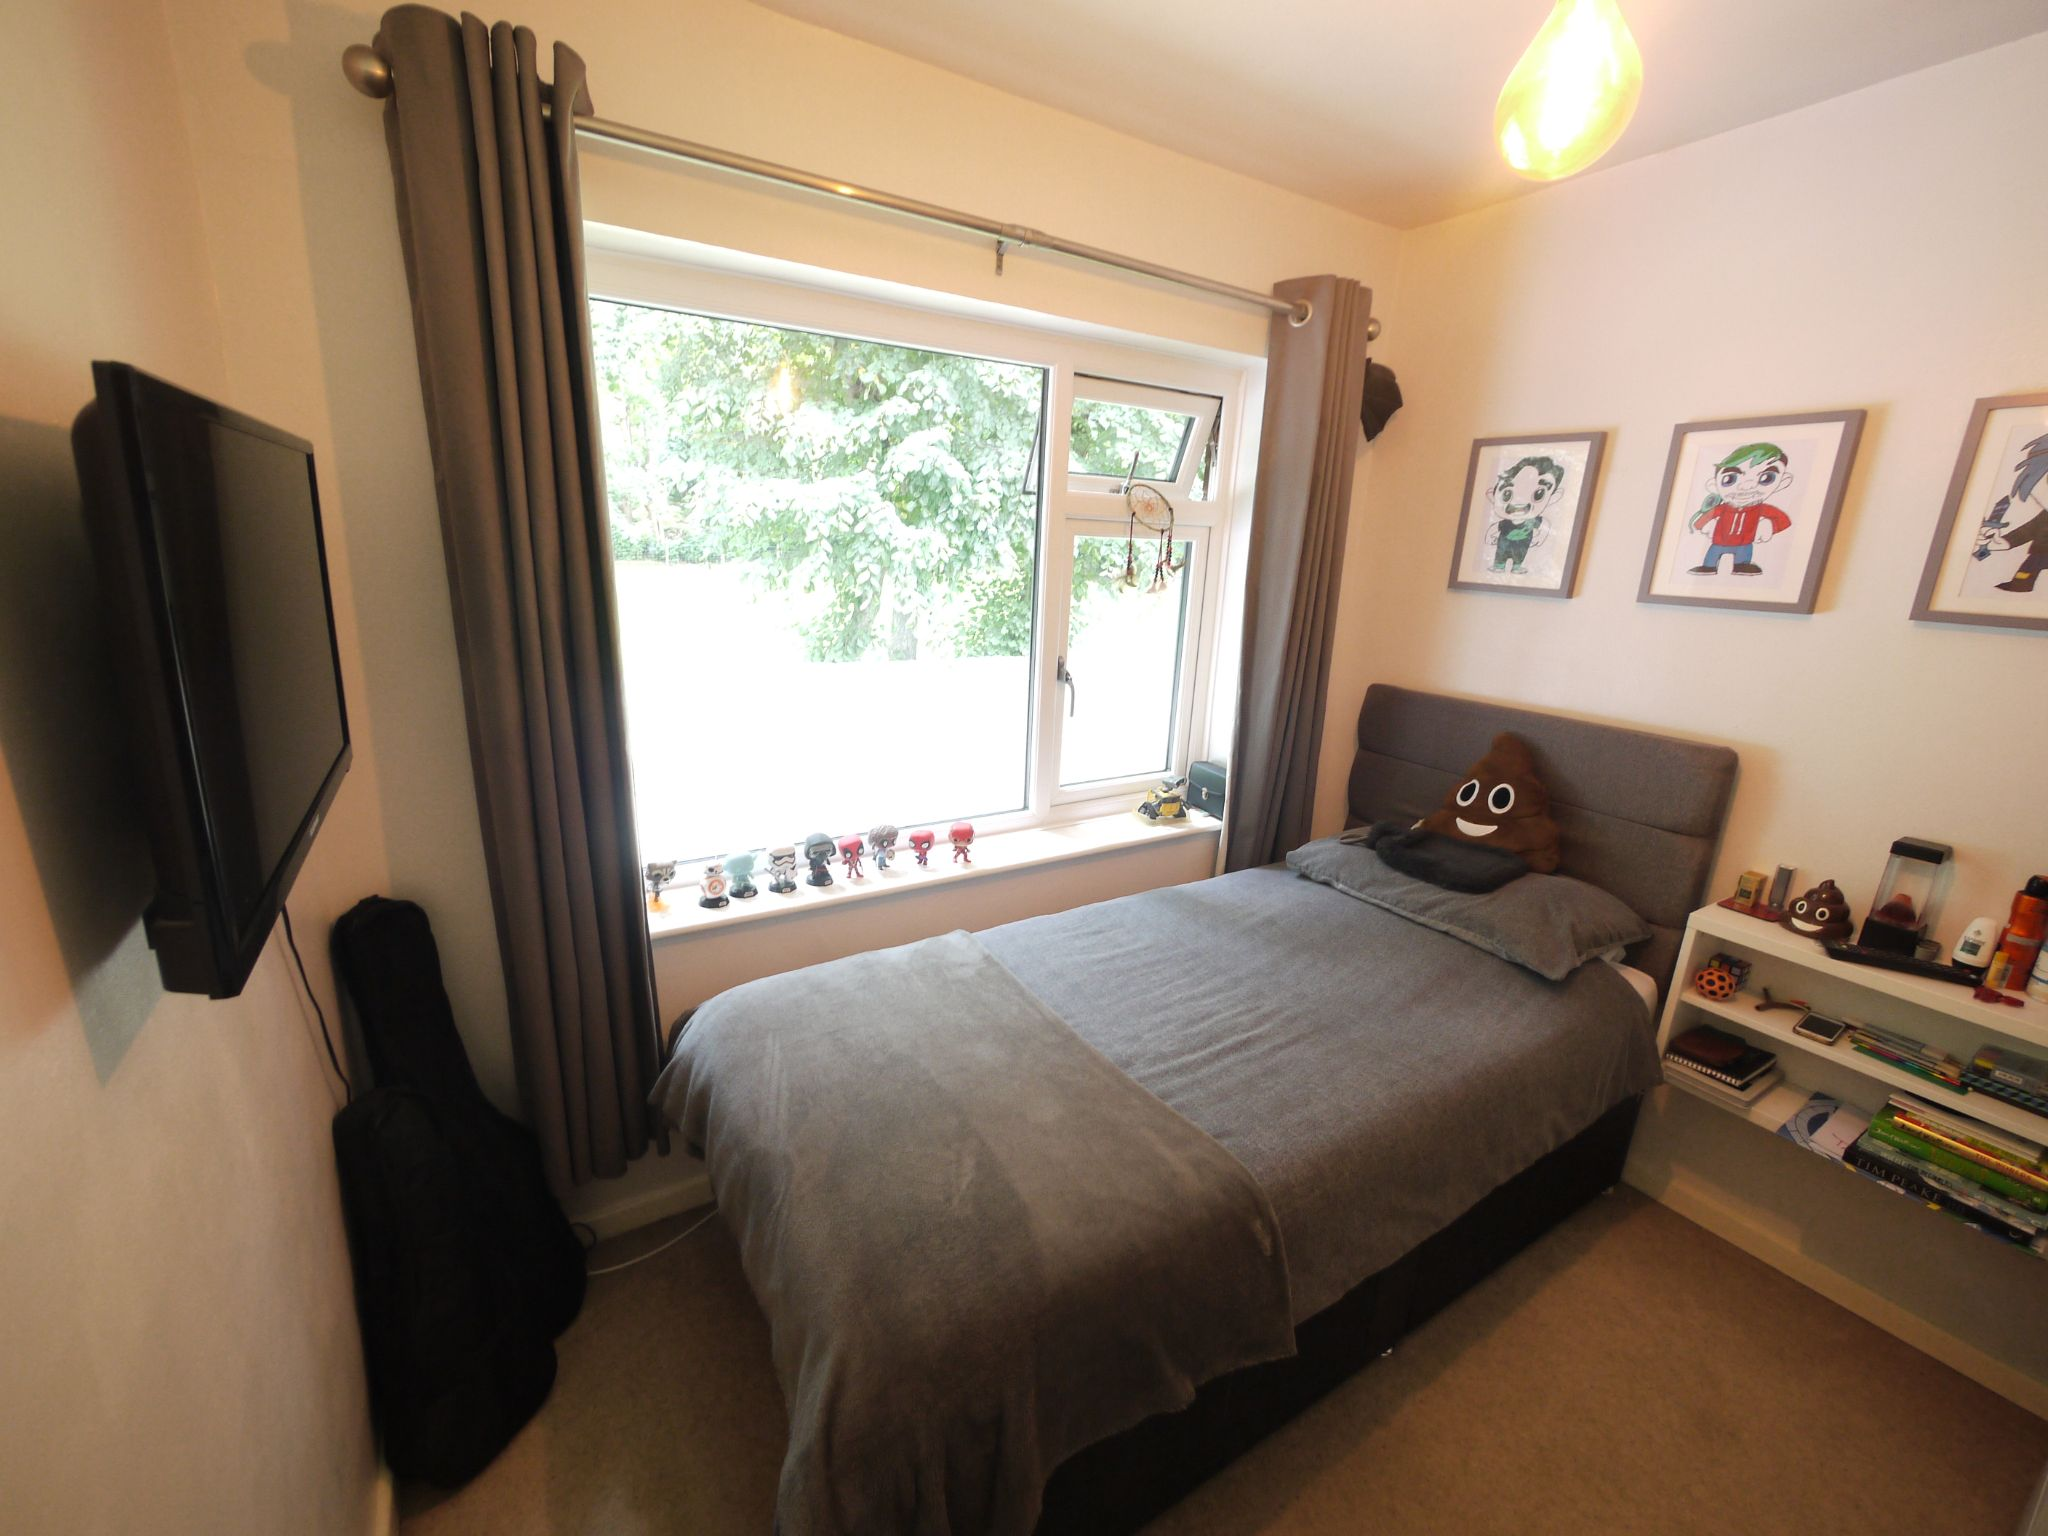 3 bedroom semi-detached house SSTC in Brighouse - Bedroom 3.